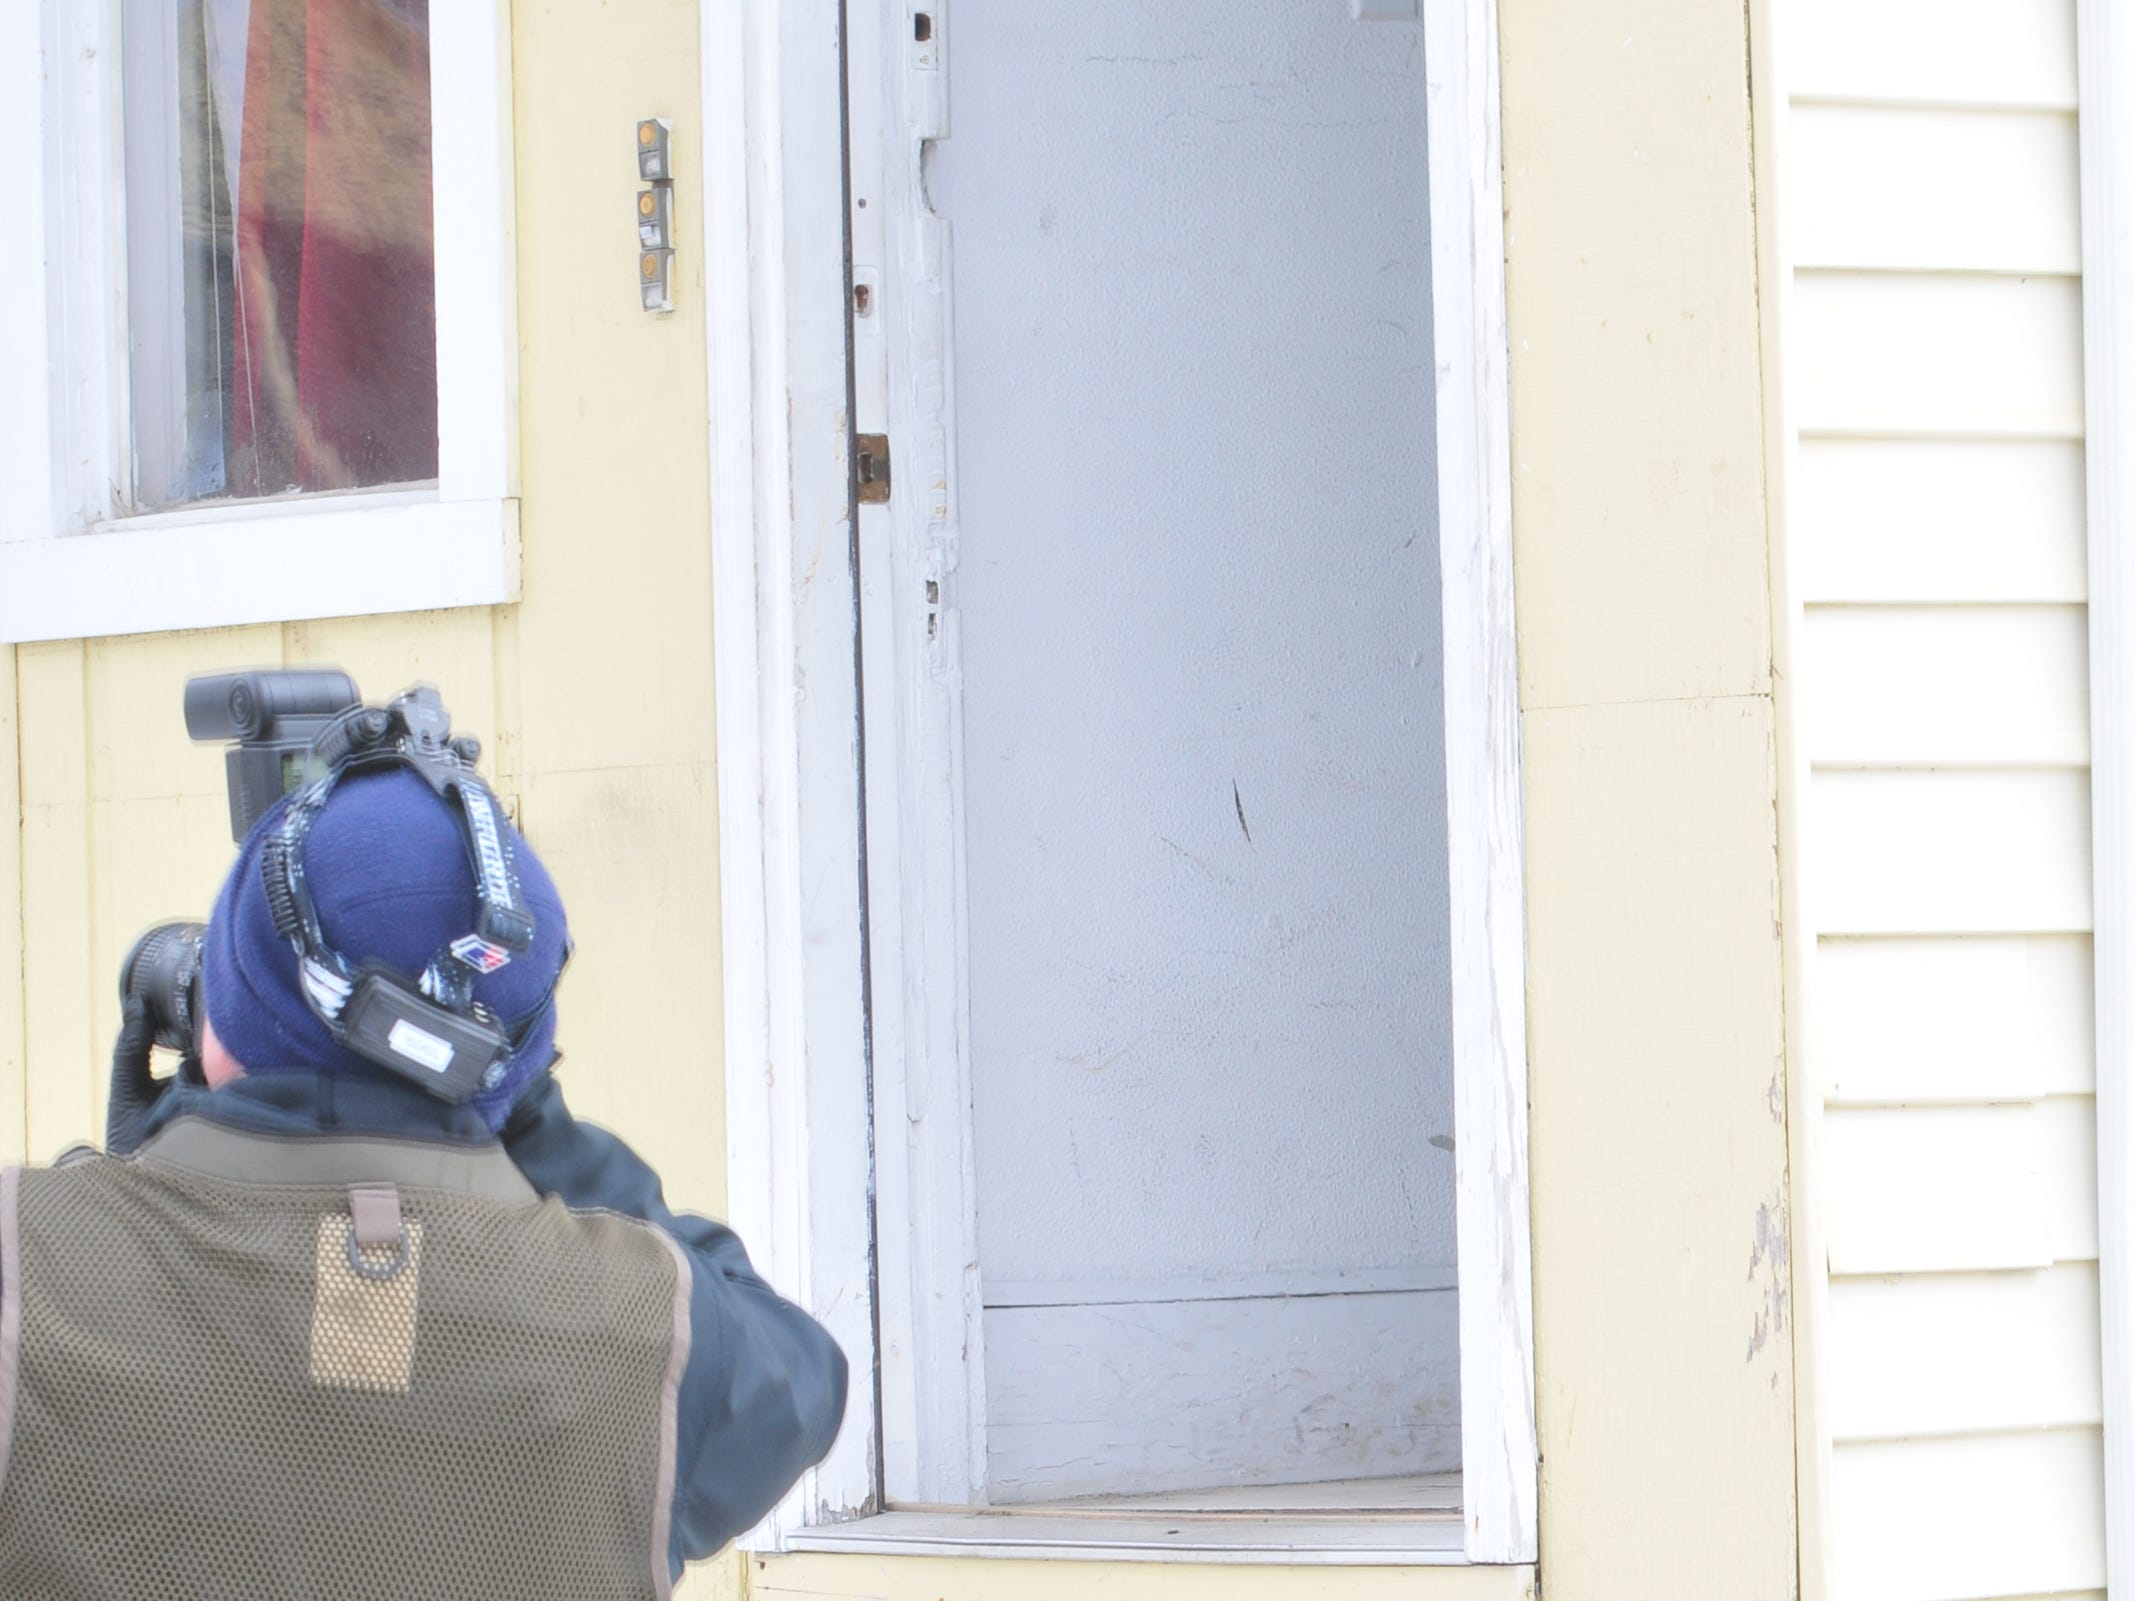 Detective Gerard Longnecker takes photographs outside the door investigators used to access the scene of a shooting Monday in the 2100 block of Grand Boulevard.